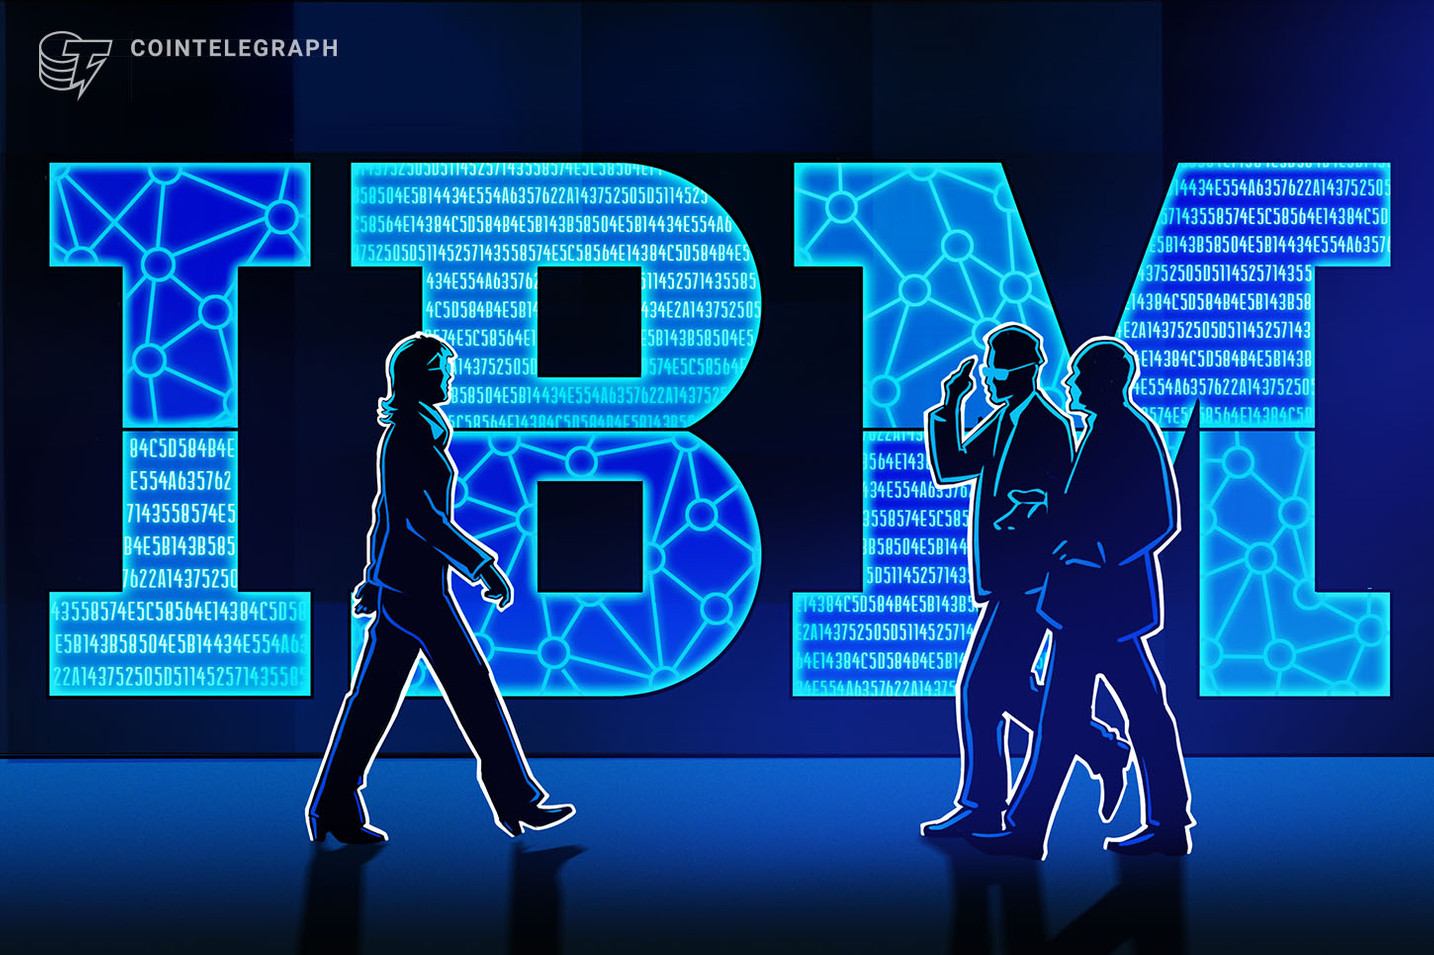 IBM's Blockchain Patents: From Food-Tracking and Shipping to IoT and Security Solutions